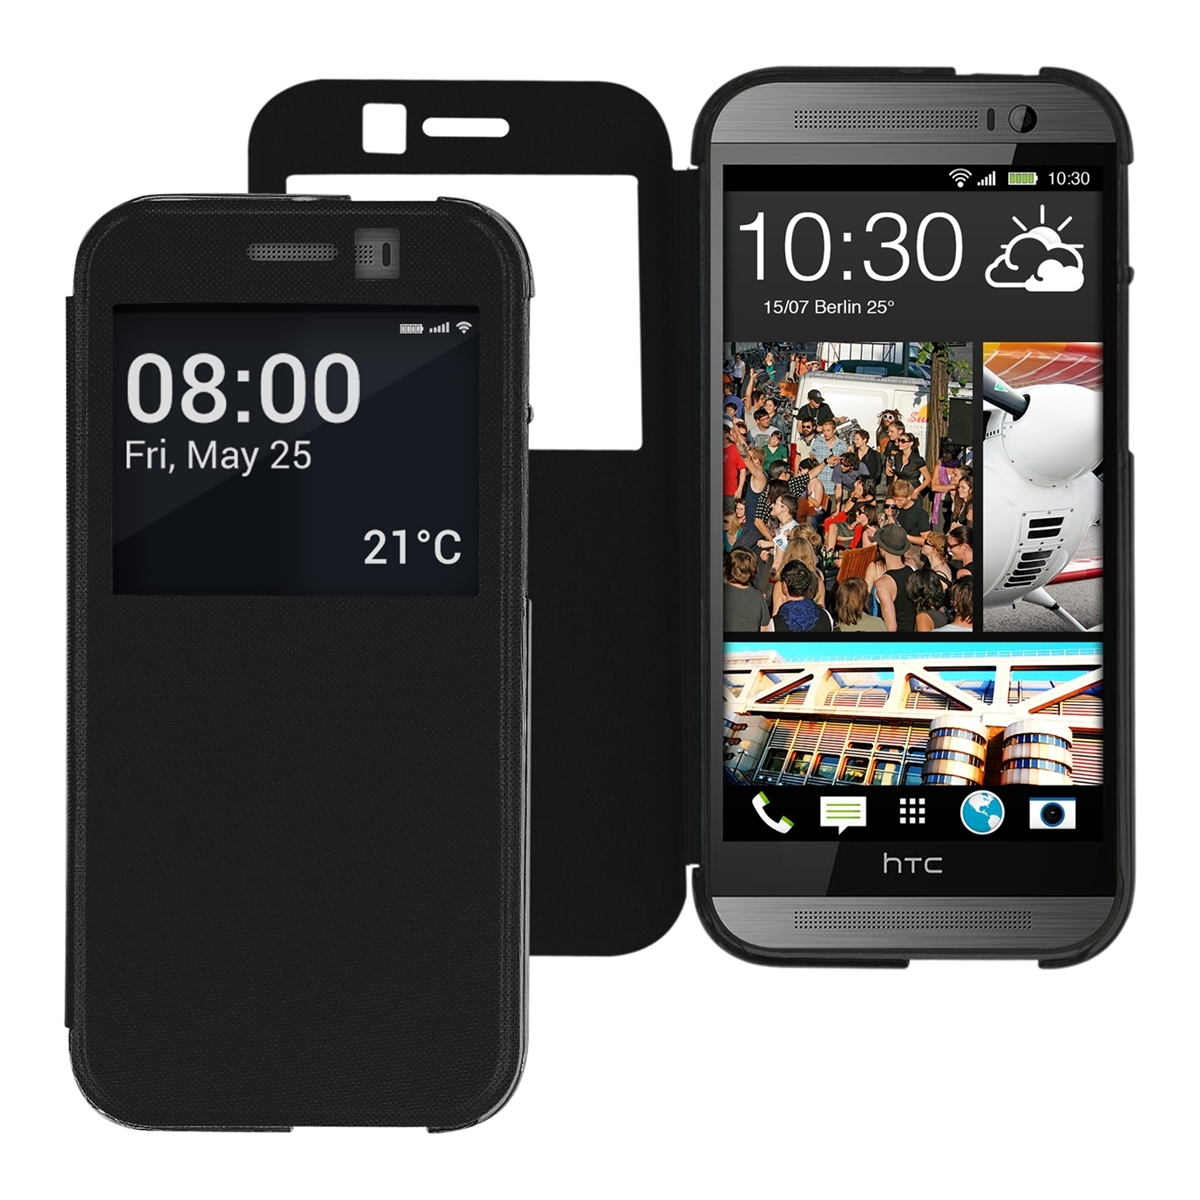 FLIP COVER FOR HTC ONE M8 DUAL BLACK WINDOW CASE SLIM BACK ...